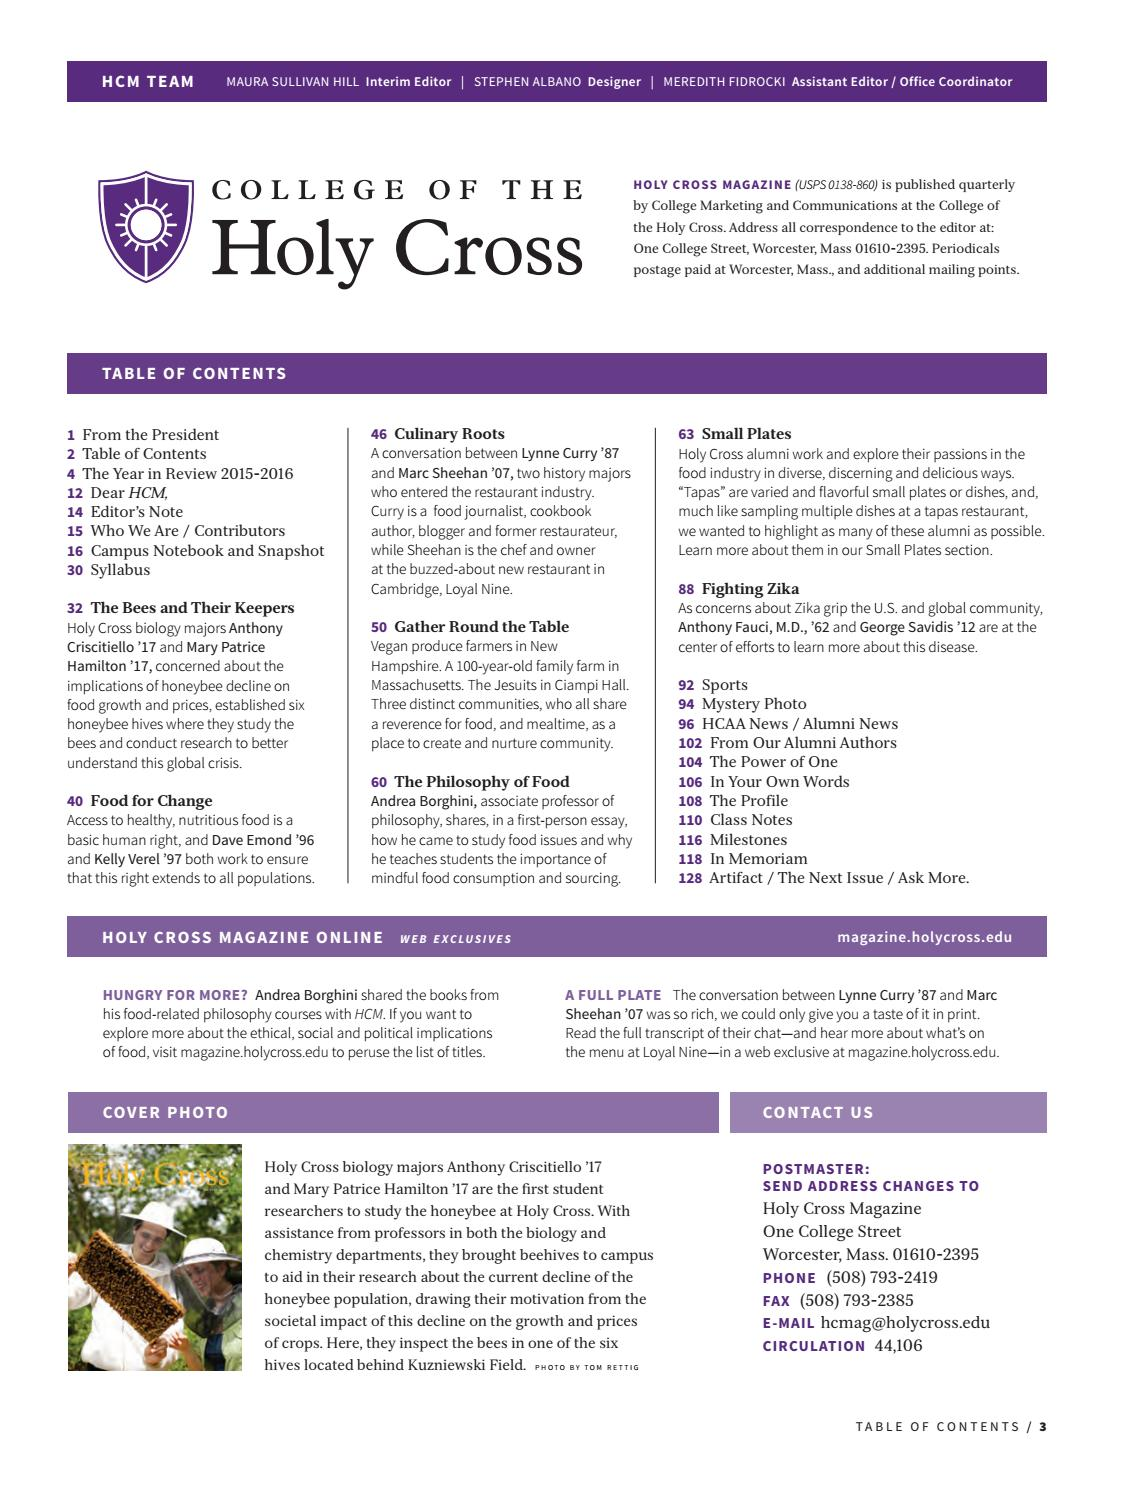 Holy Cross Magazine - Fall 2016 by College of the Holy Cross - issuu